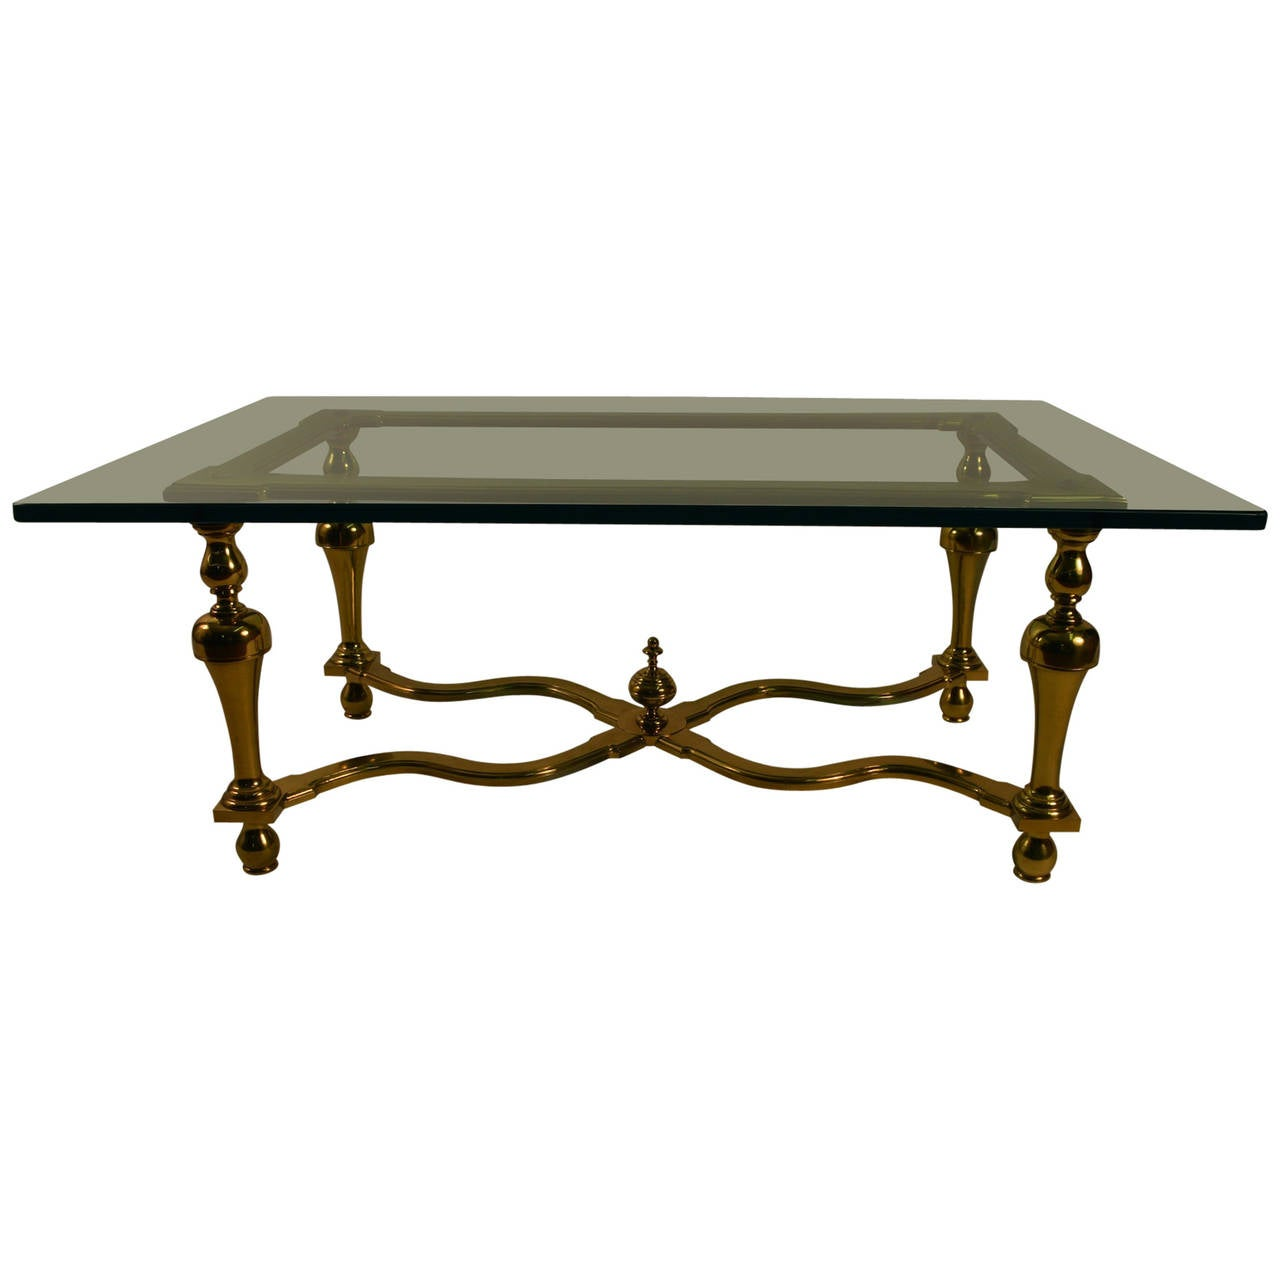 Brass And Glass Coffee Or Cocktail Table For Sale At 1stdibs